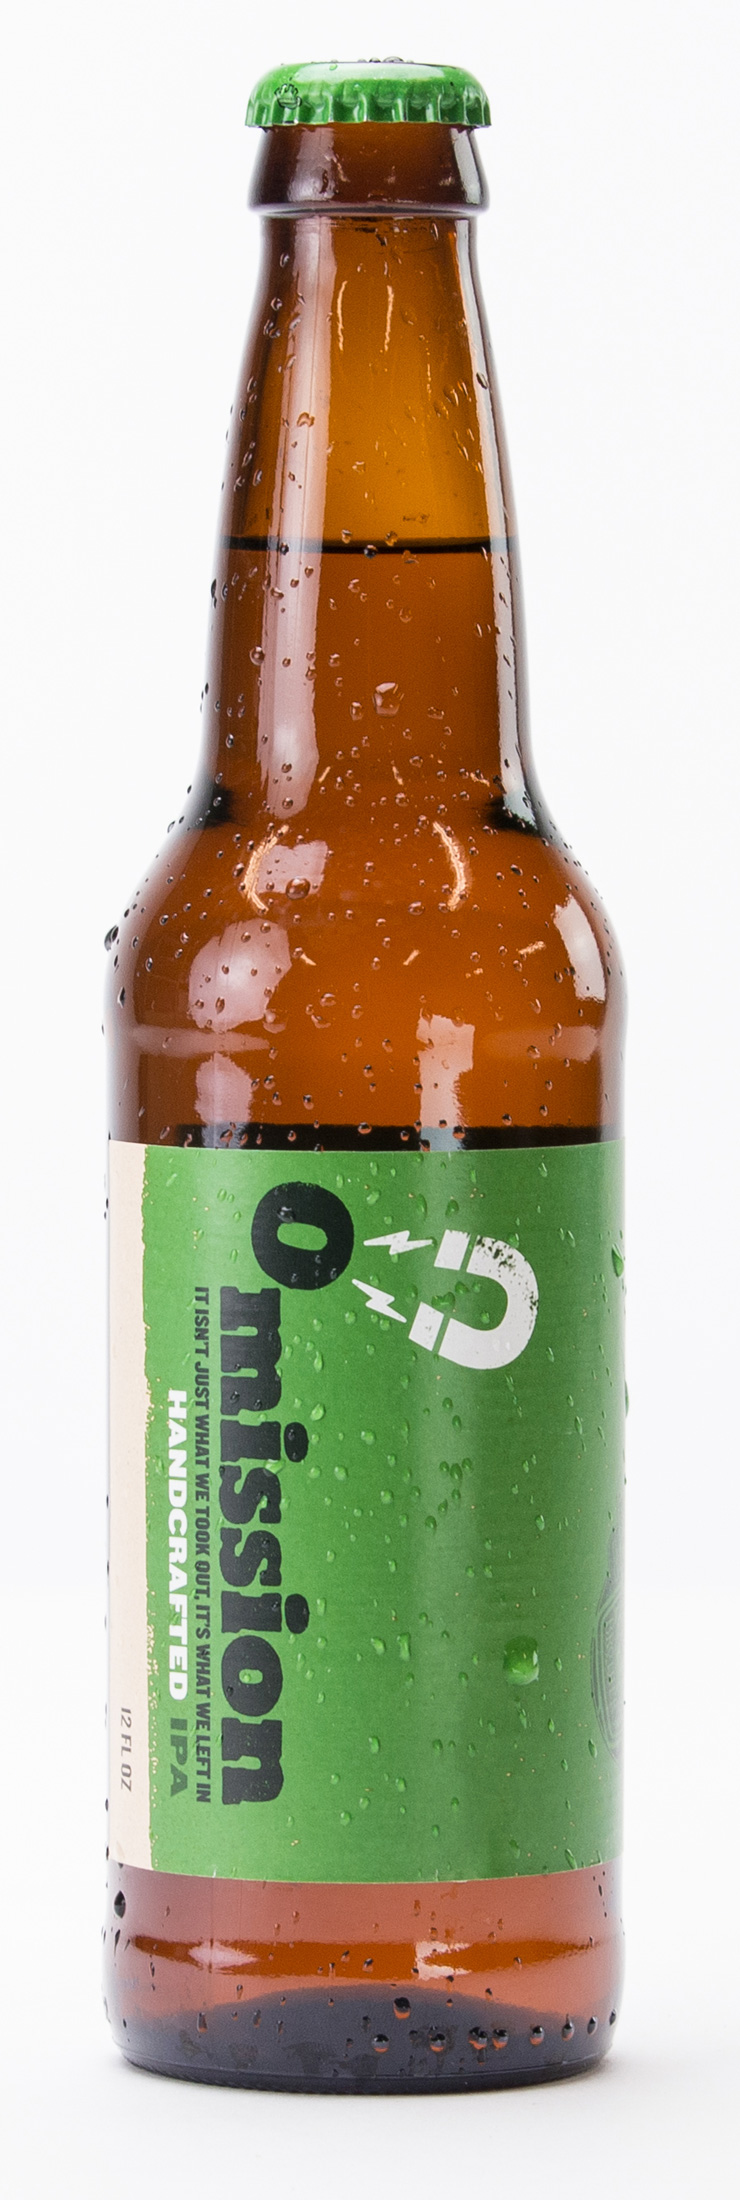 Nat_IPA_Bottle